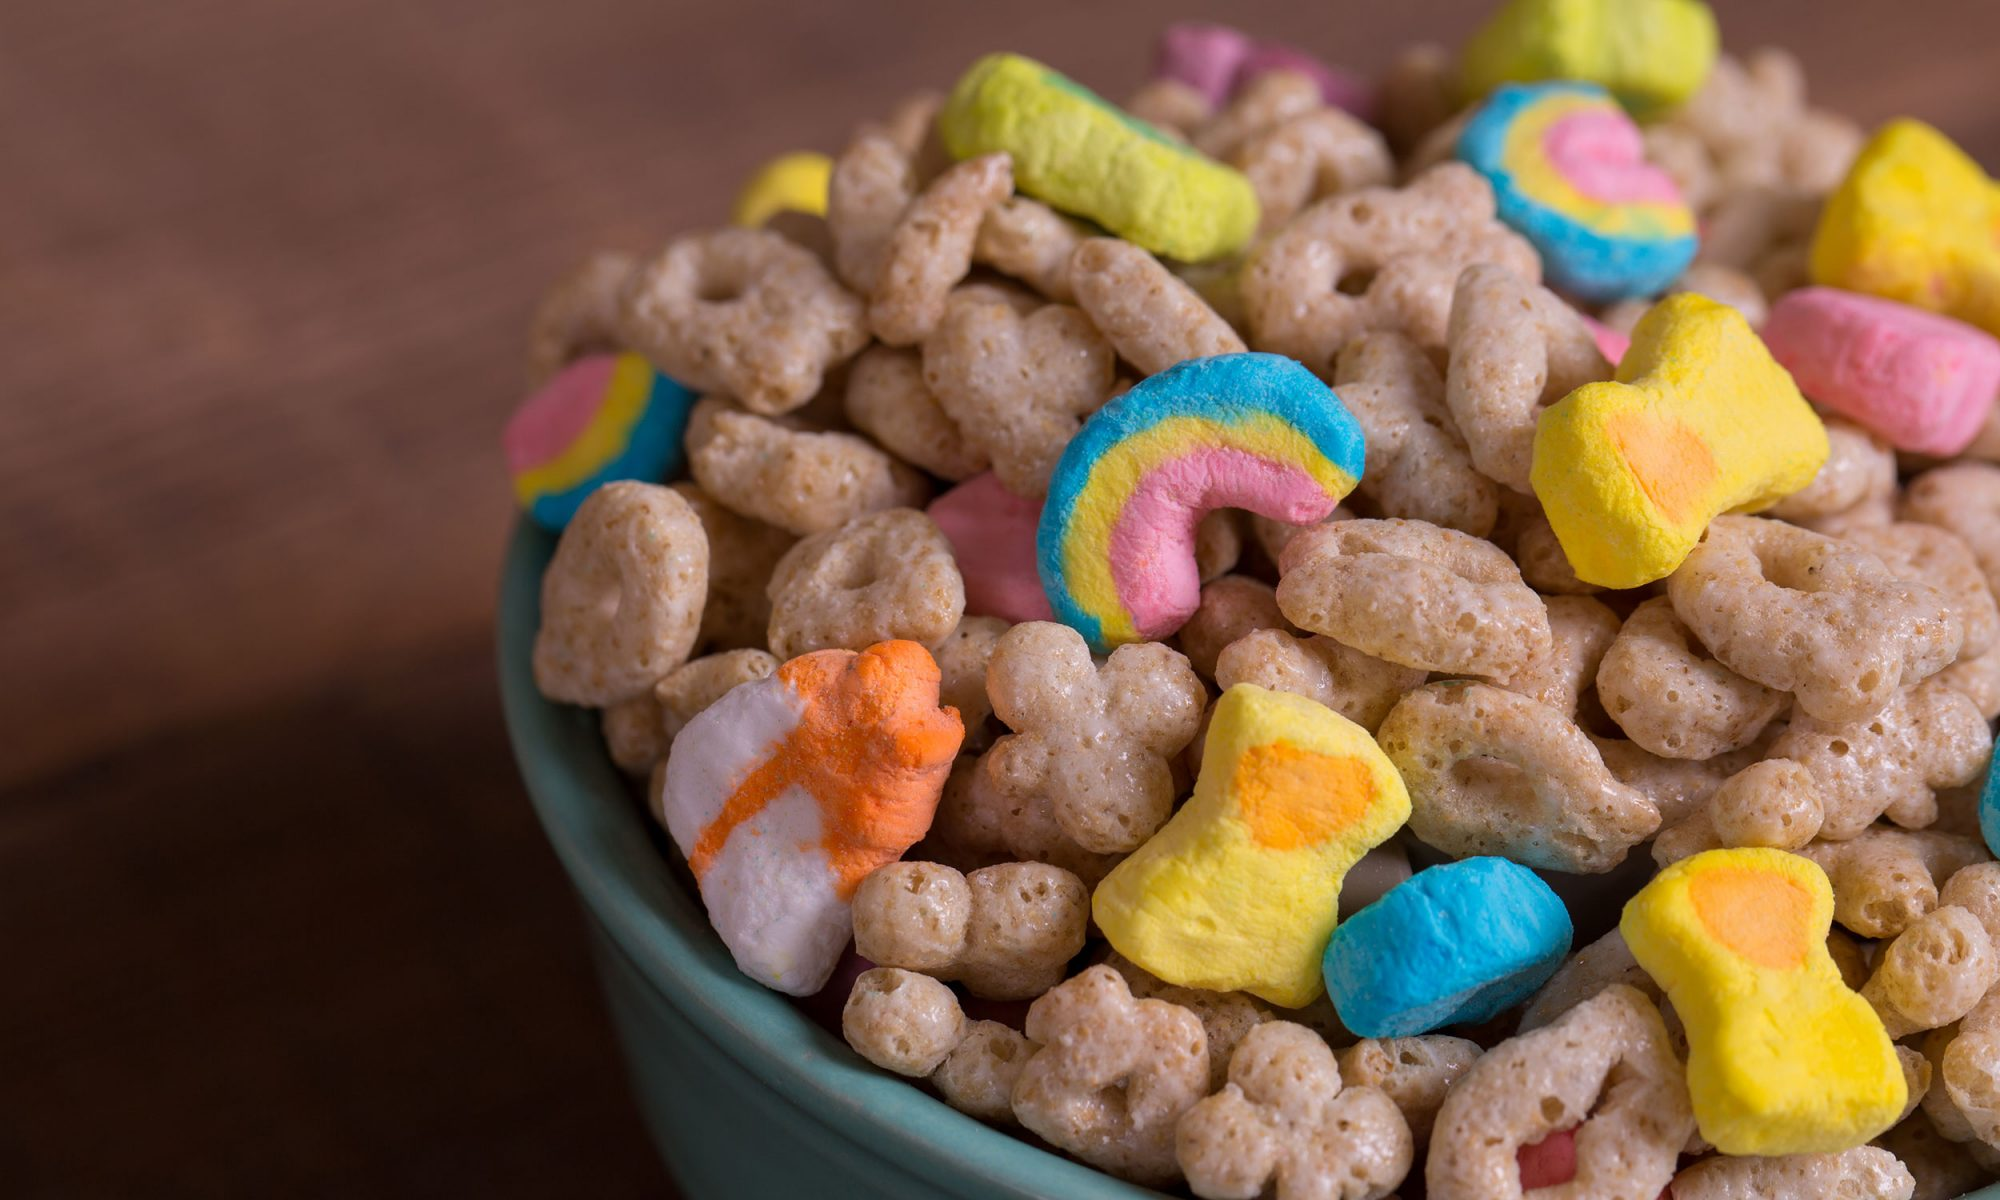 EC: Why Are Cereal Marshmallows Hard?